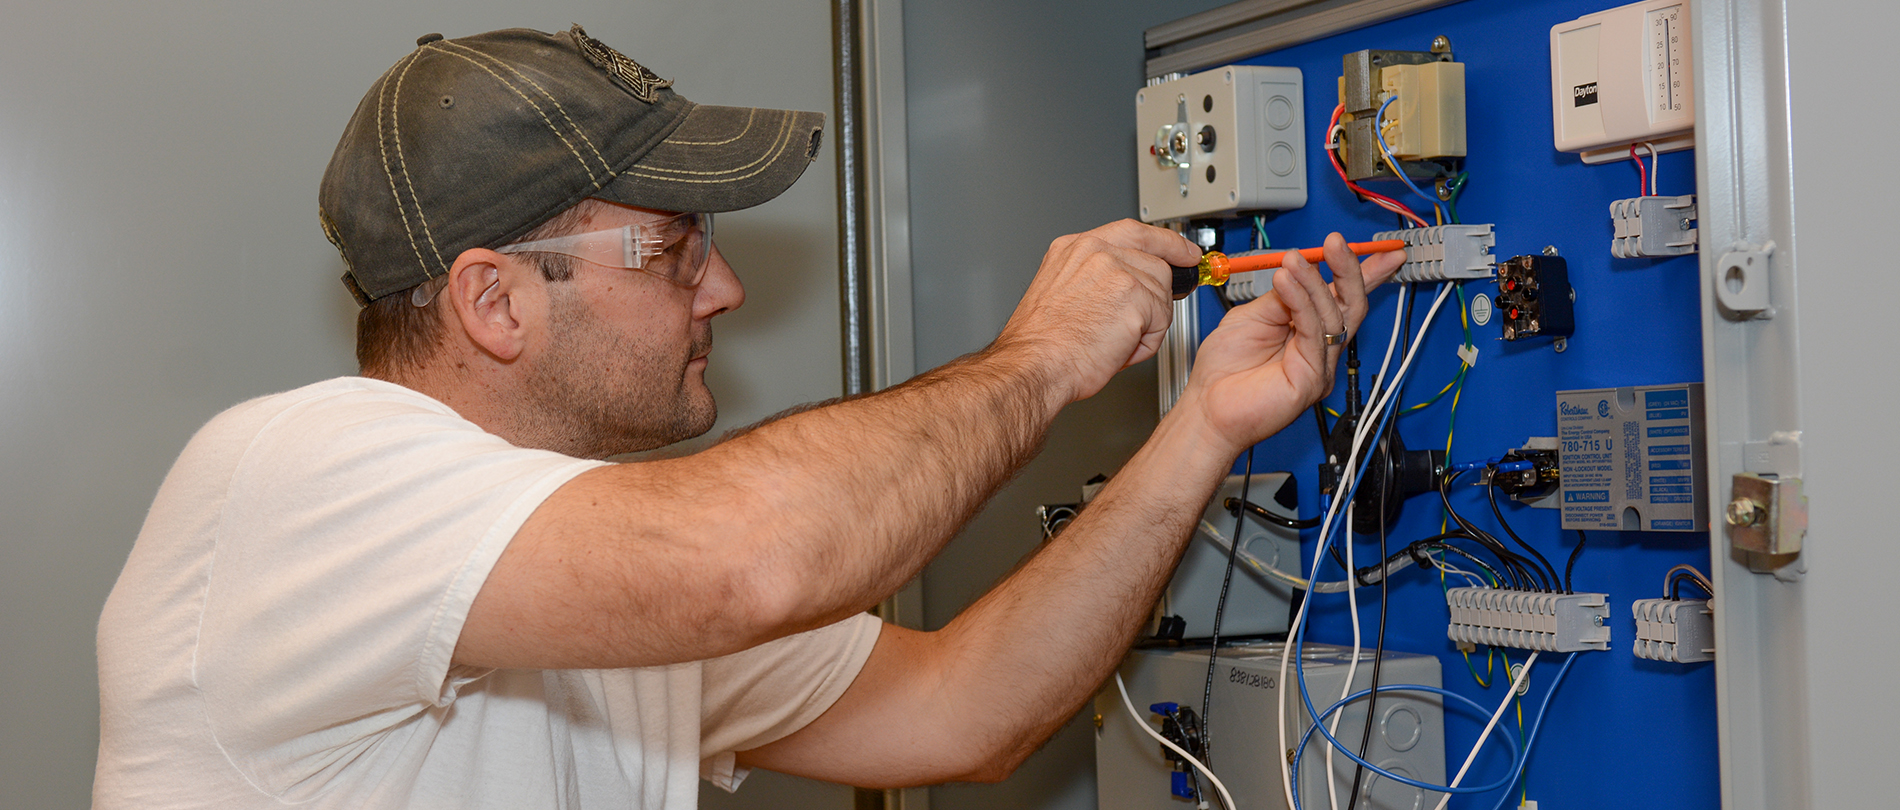 HVAC repair is one path to a new career